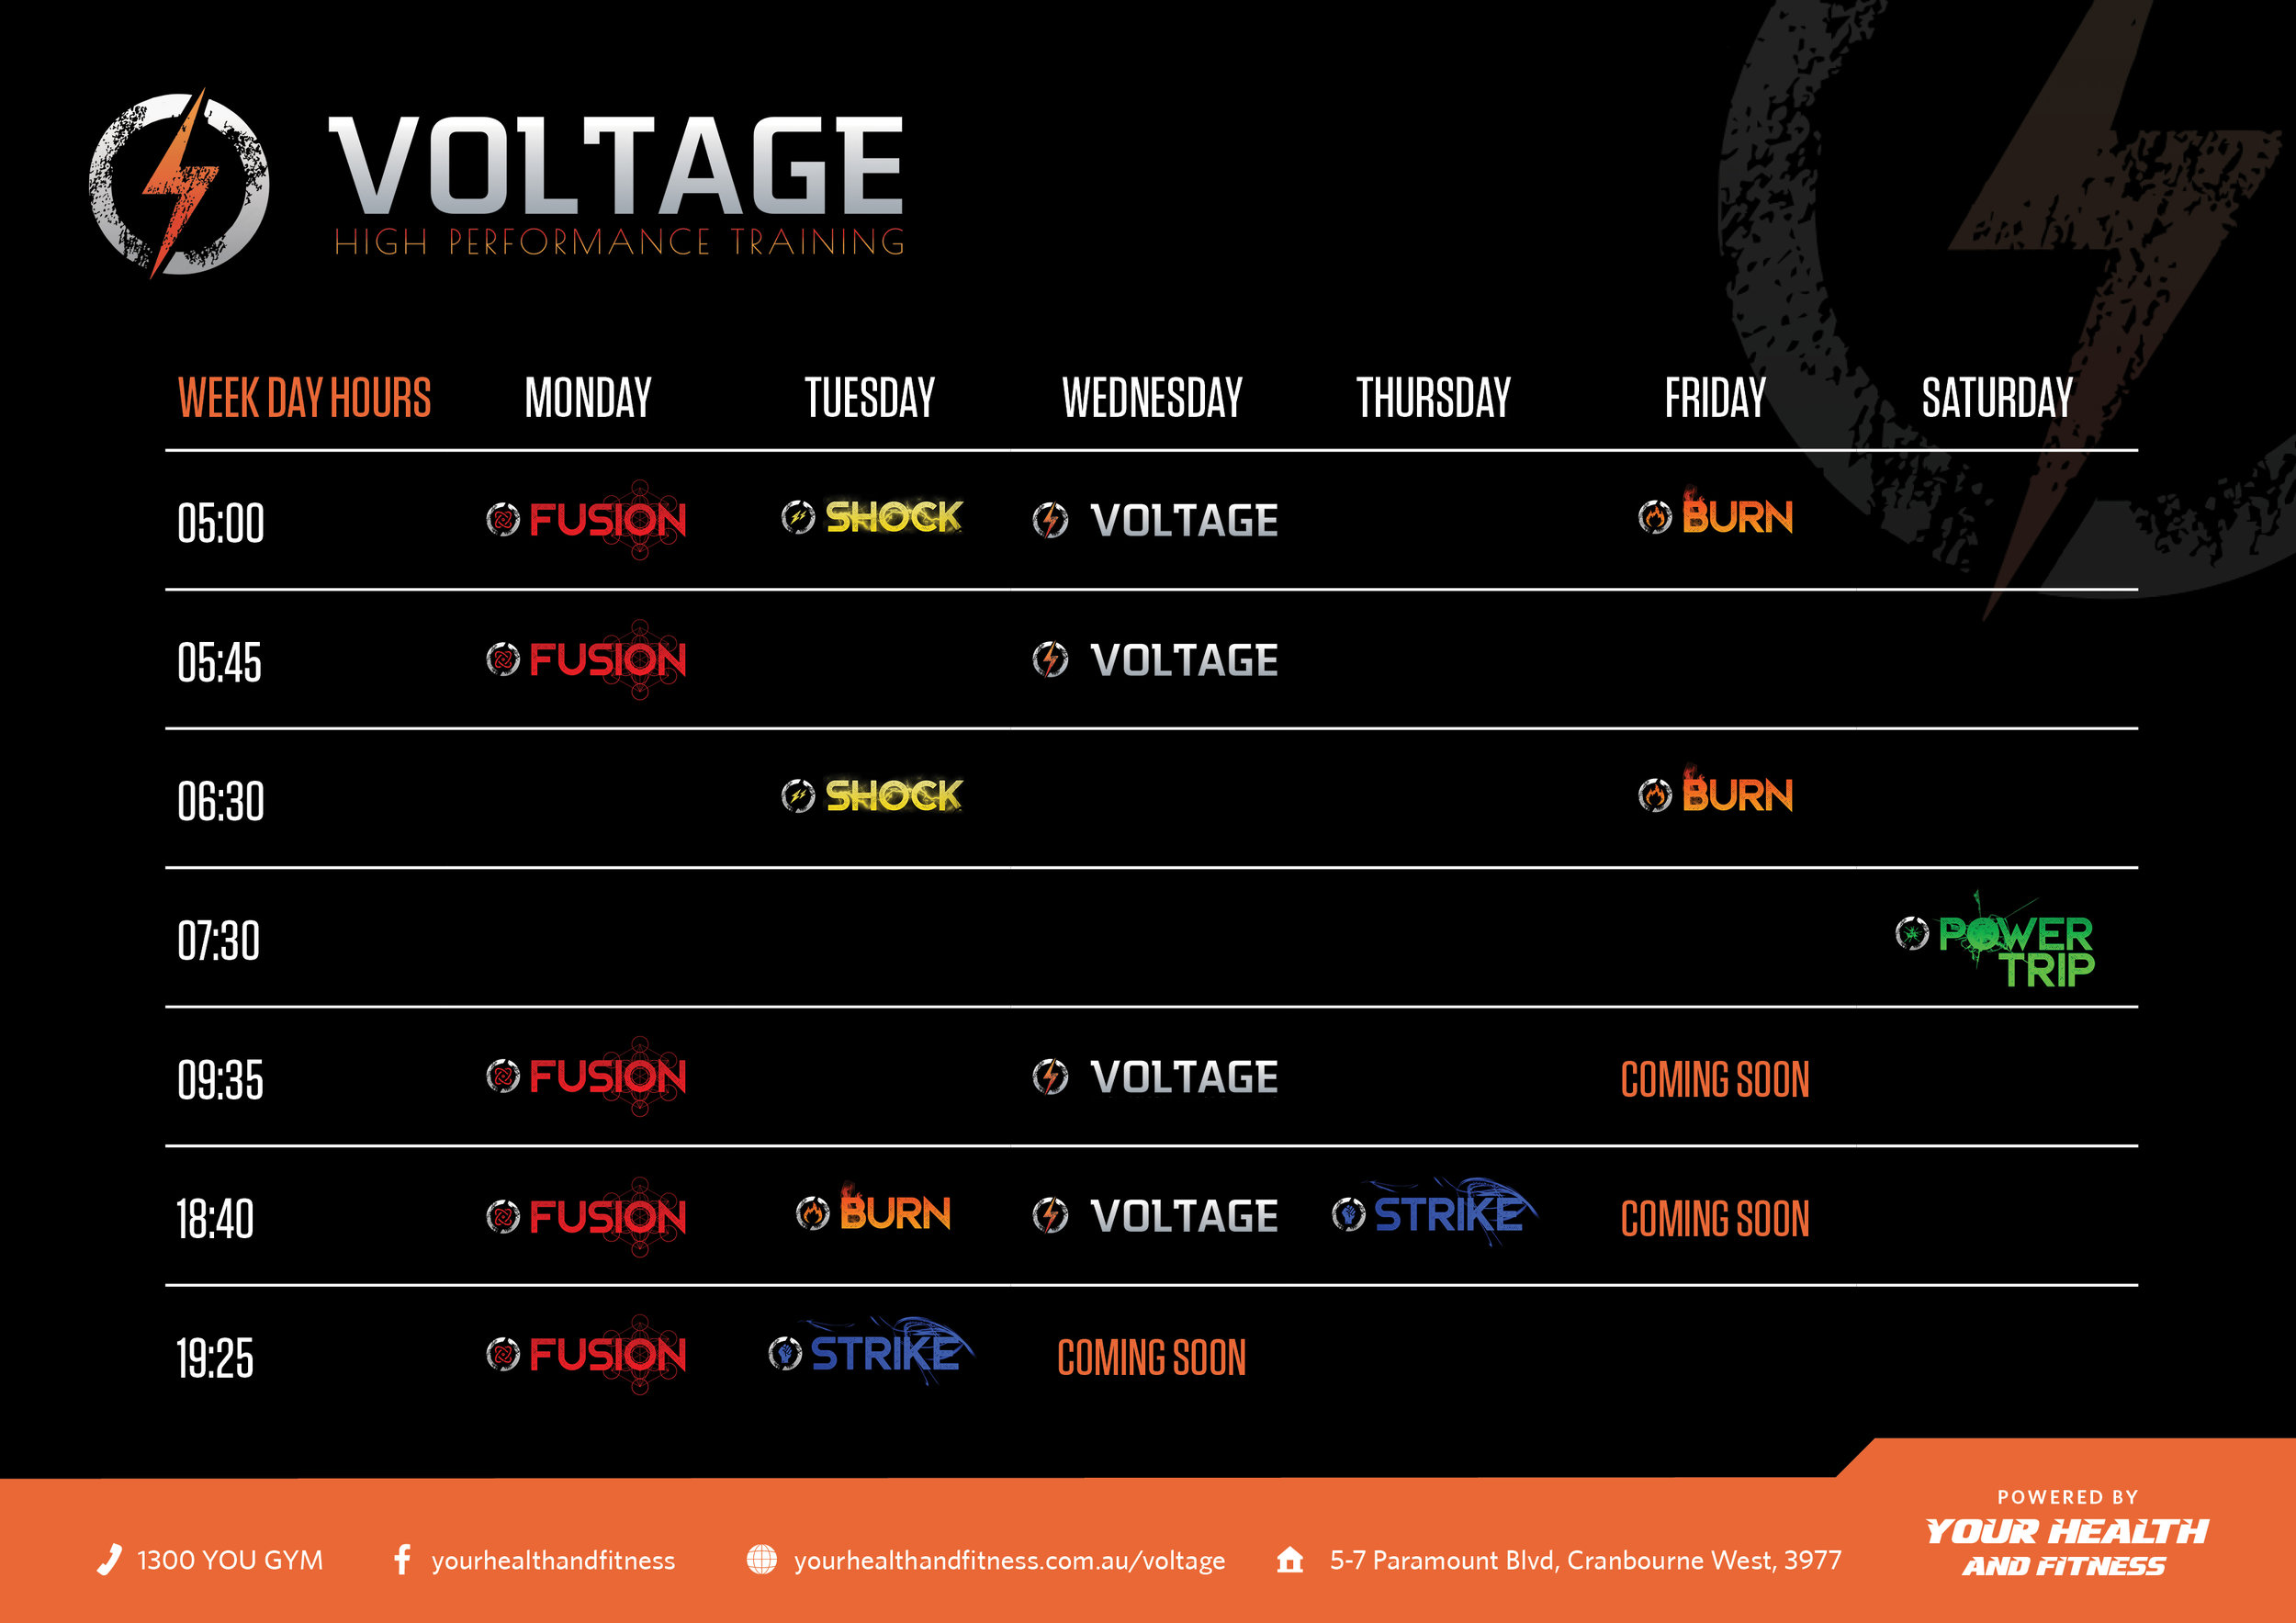 voltage-timetable-A4.jpg